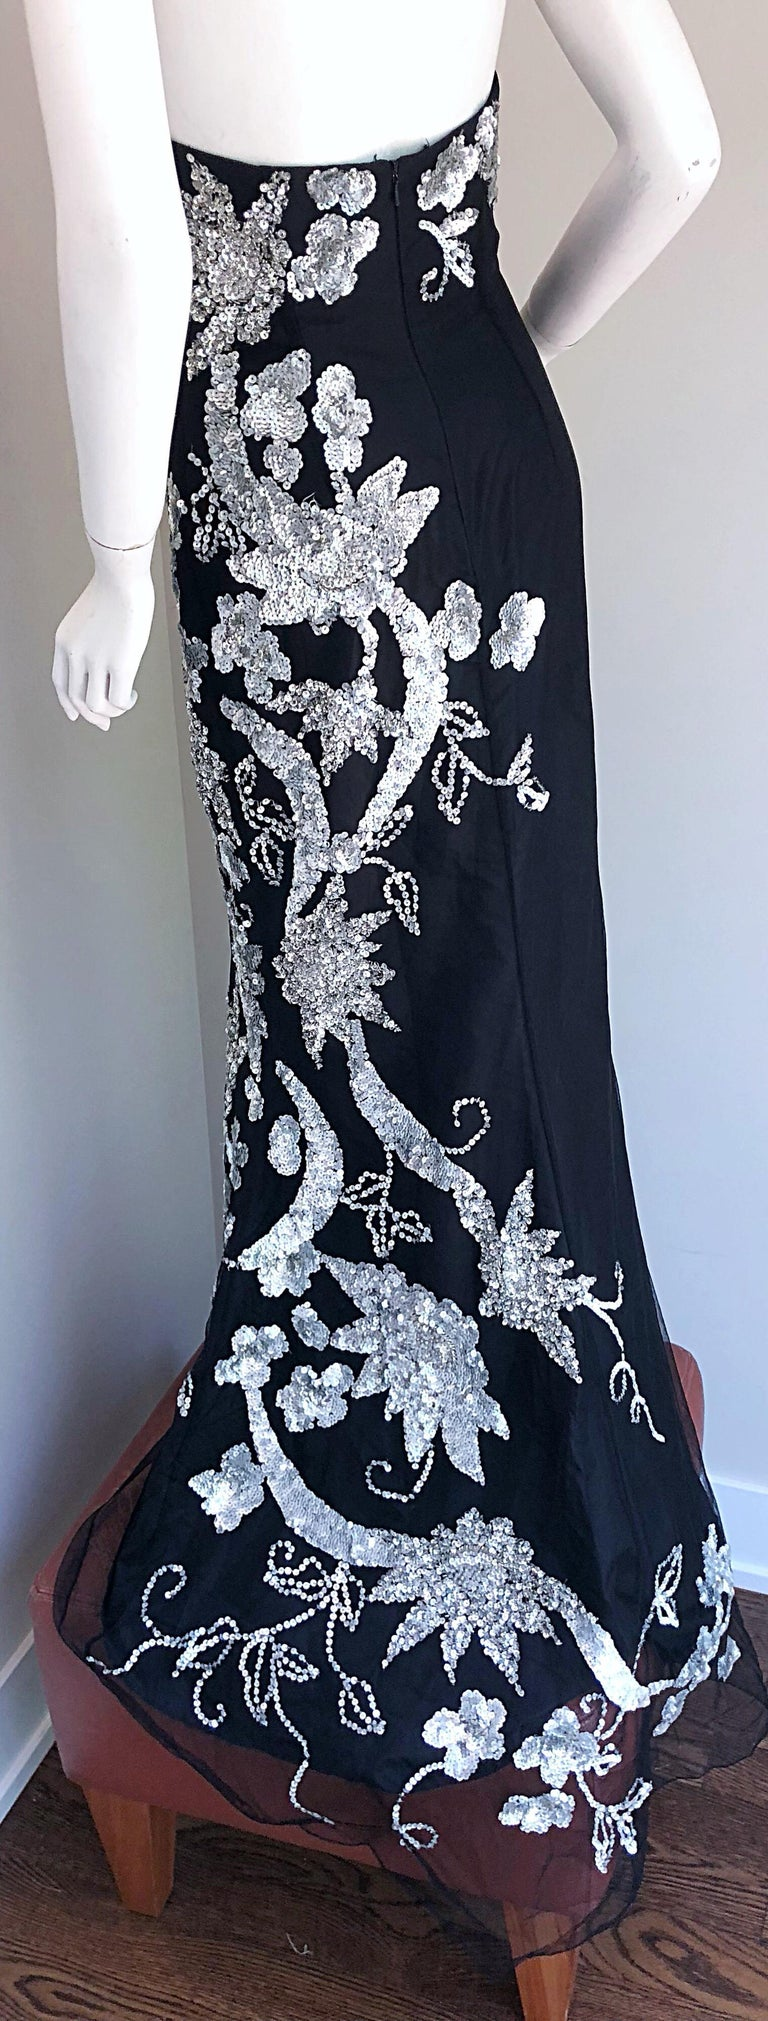 Gorgeous 1990s Black and Silver Sequined Dramatic Strapless Vintage 90s Gown  4